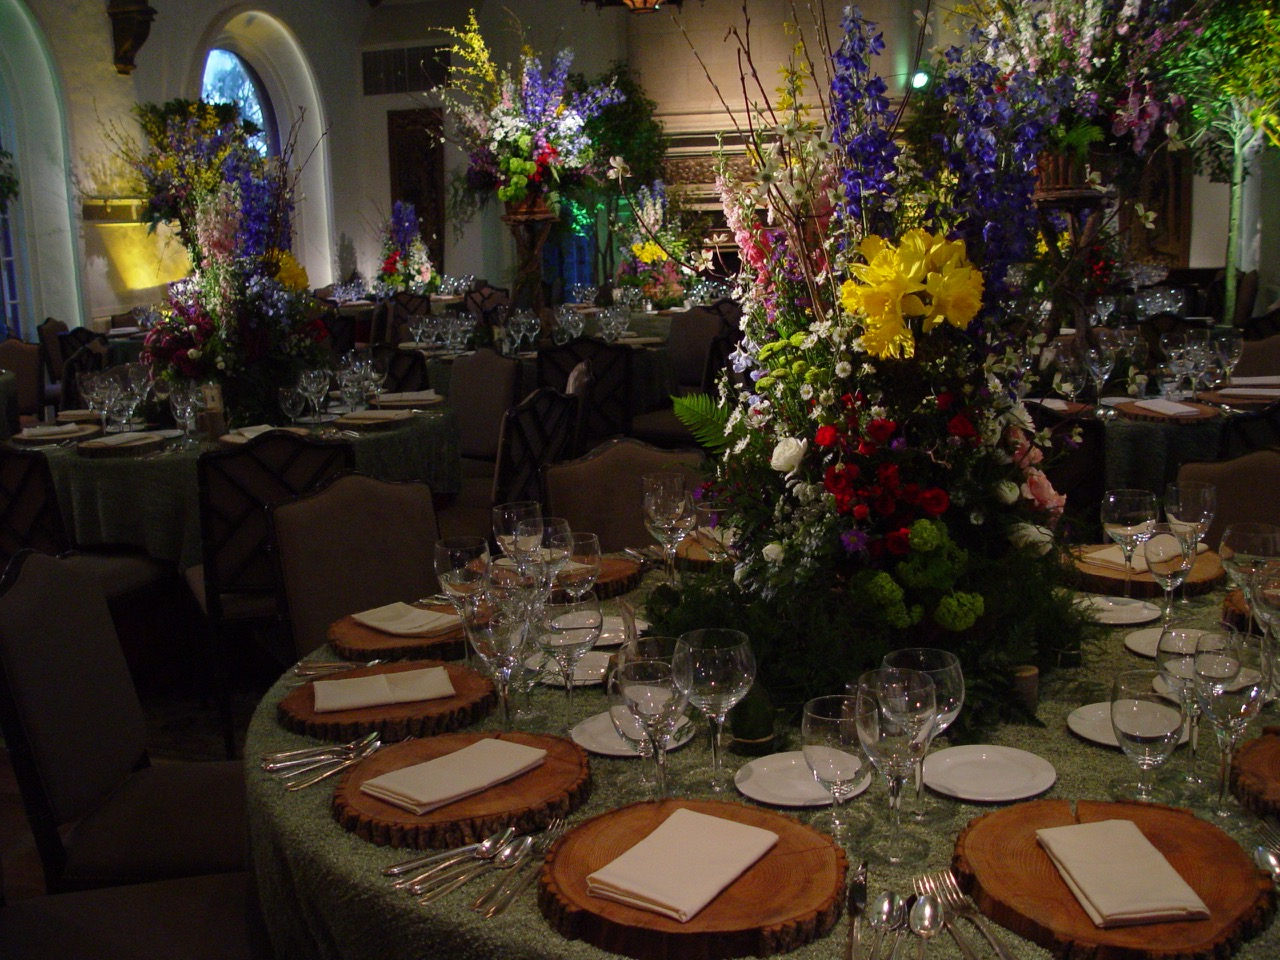 Event+Decor+Design+Lighting+NJ+NYC+Eggsotic+Events+NJs+Best+Event+Decorator+Event+Lighting+Event+Design+Wedding+Bar+Mitzvah+Bat+Mitzvah+Gala+Fundraiser+28.jpg